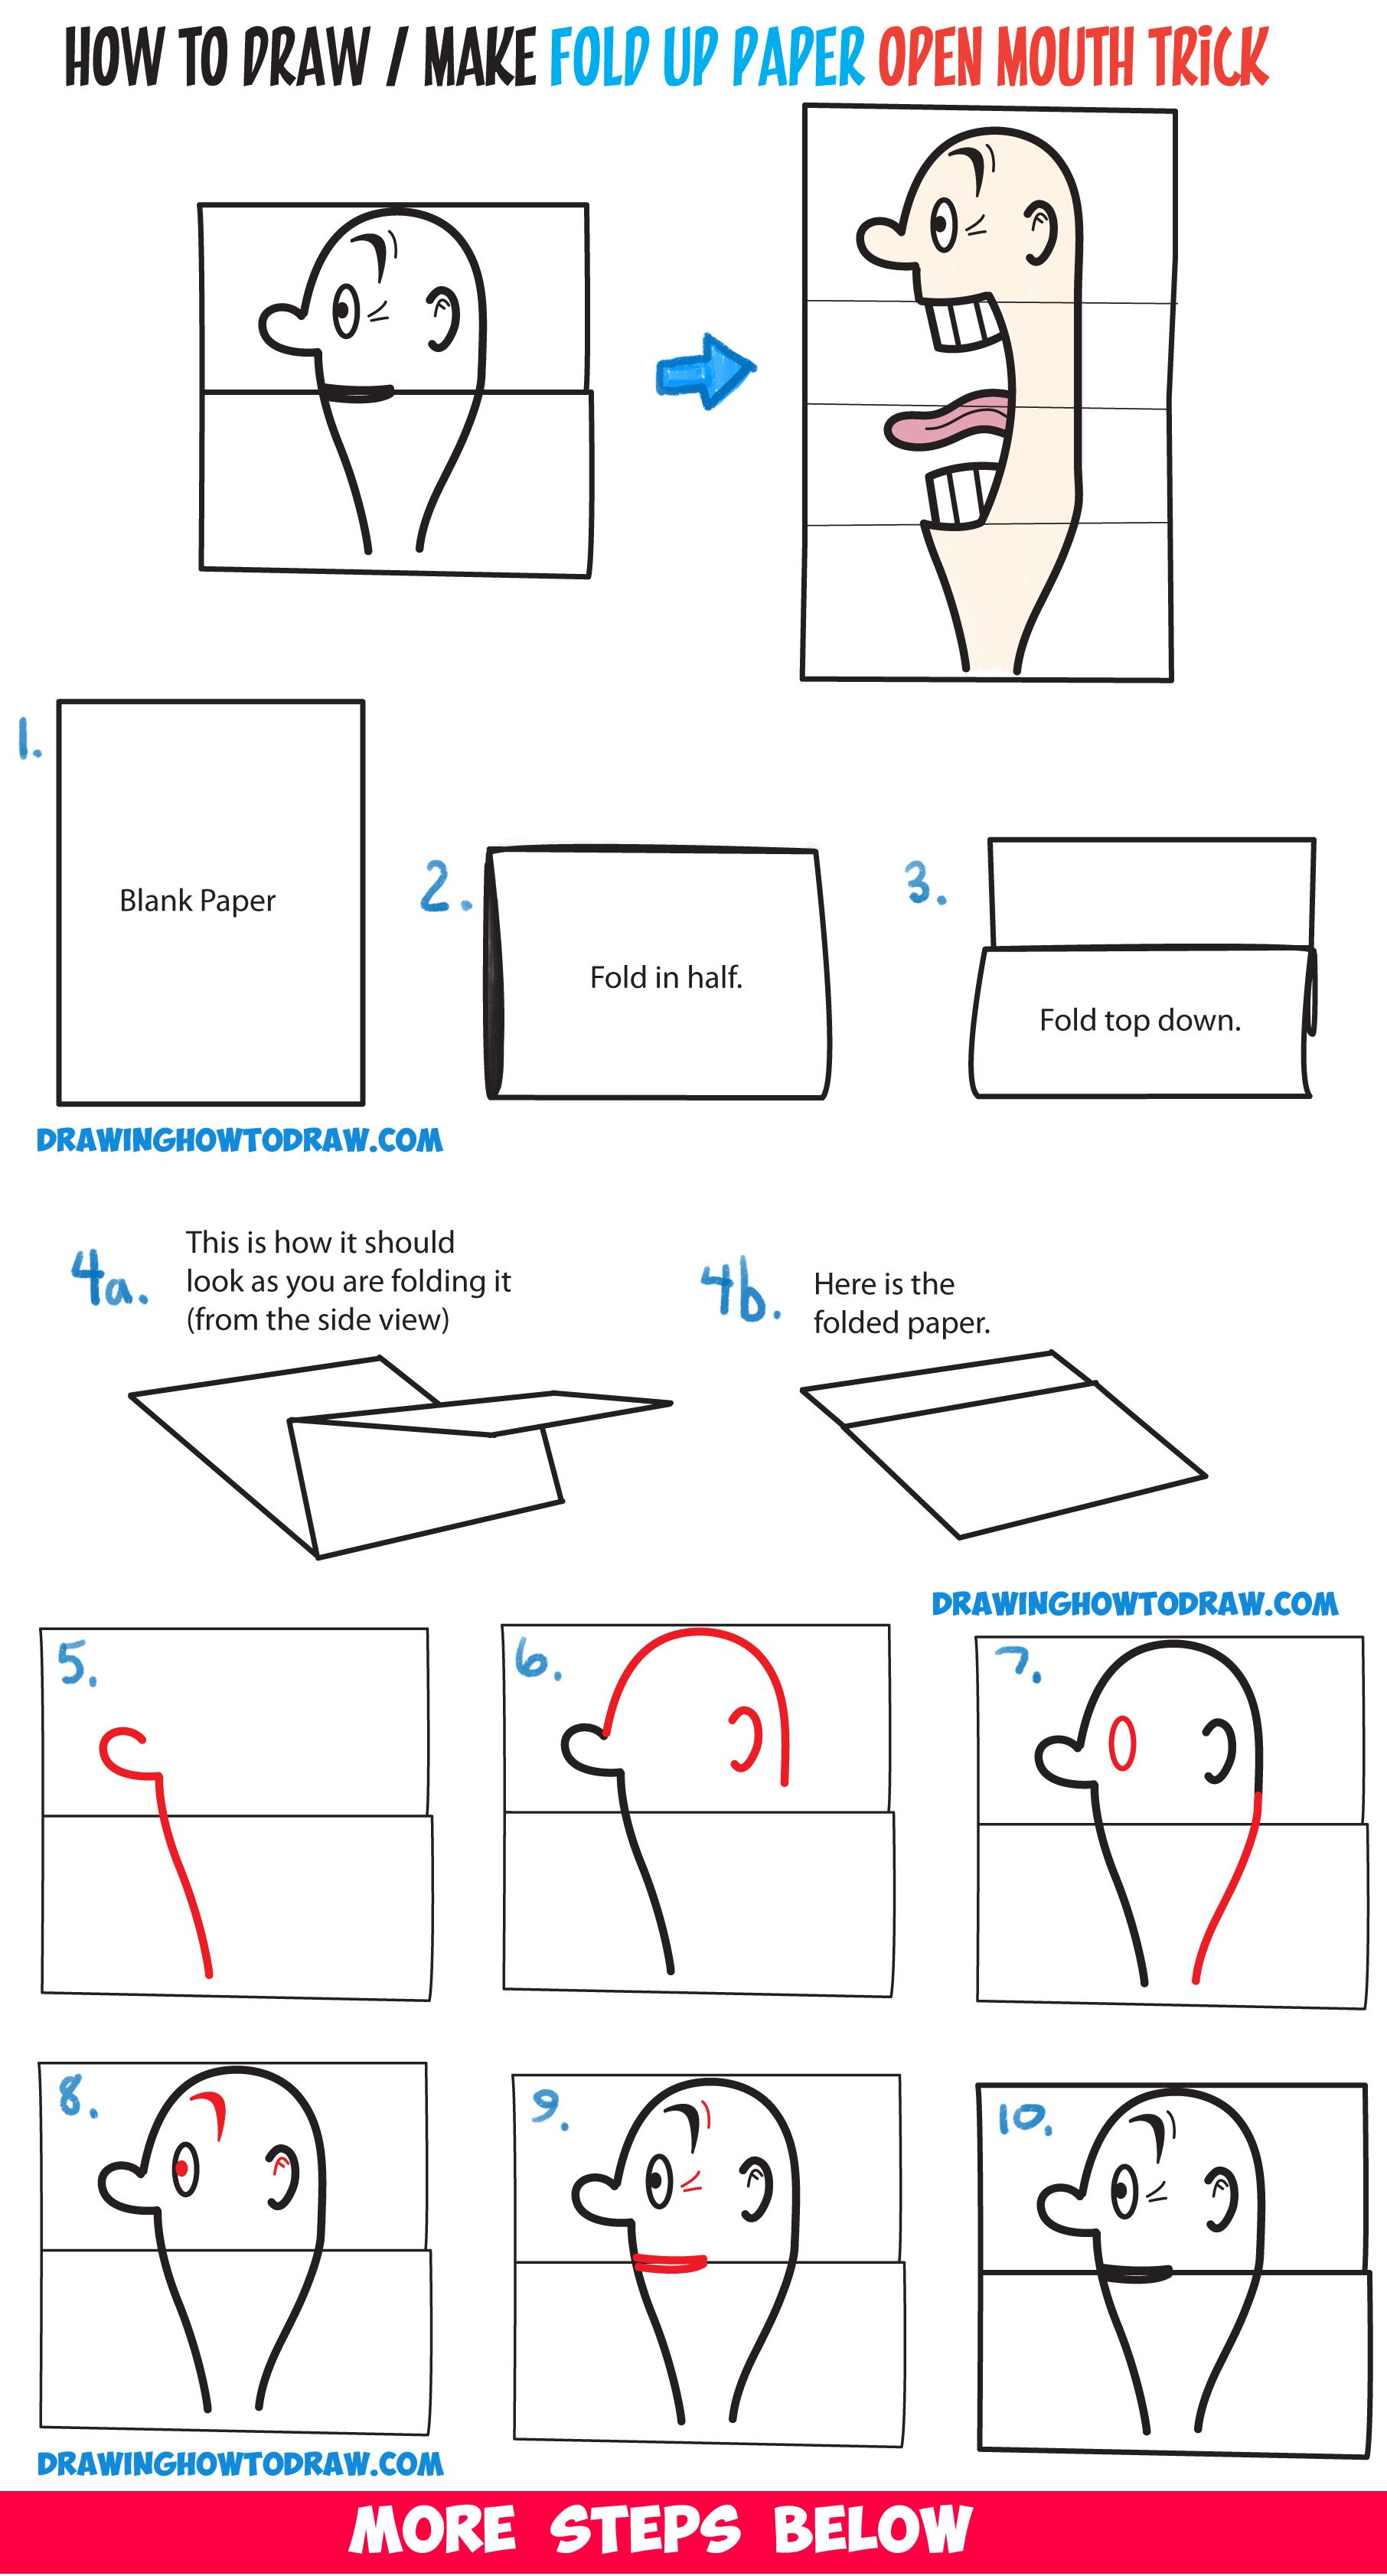 how to draw a big opening mouth paper folding trick perfect for